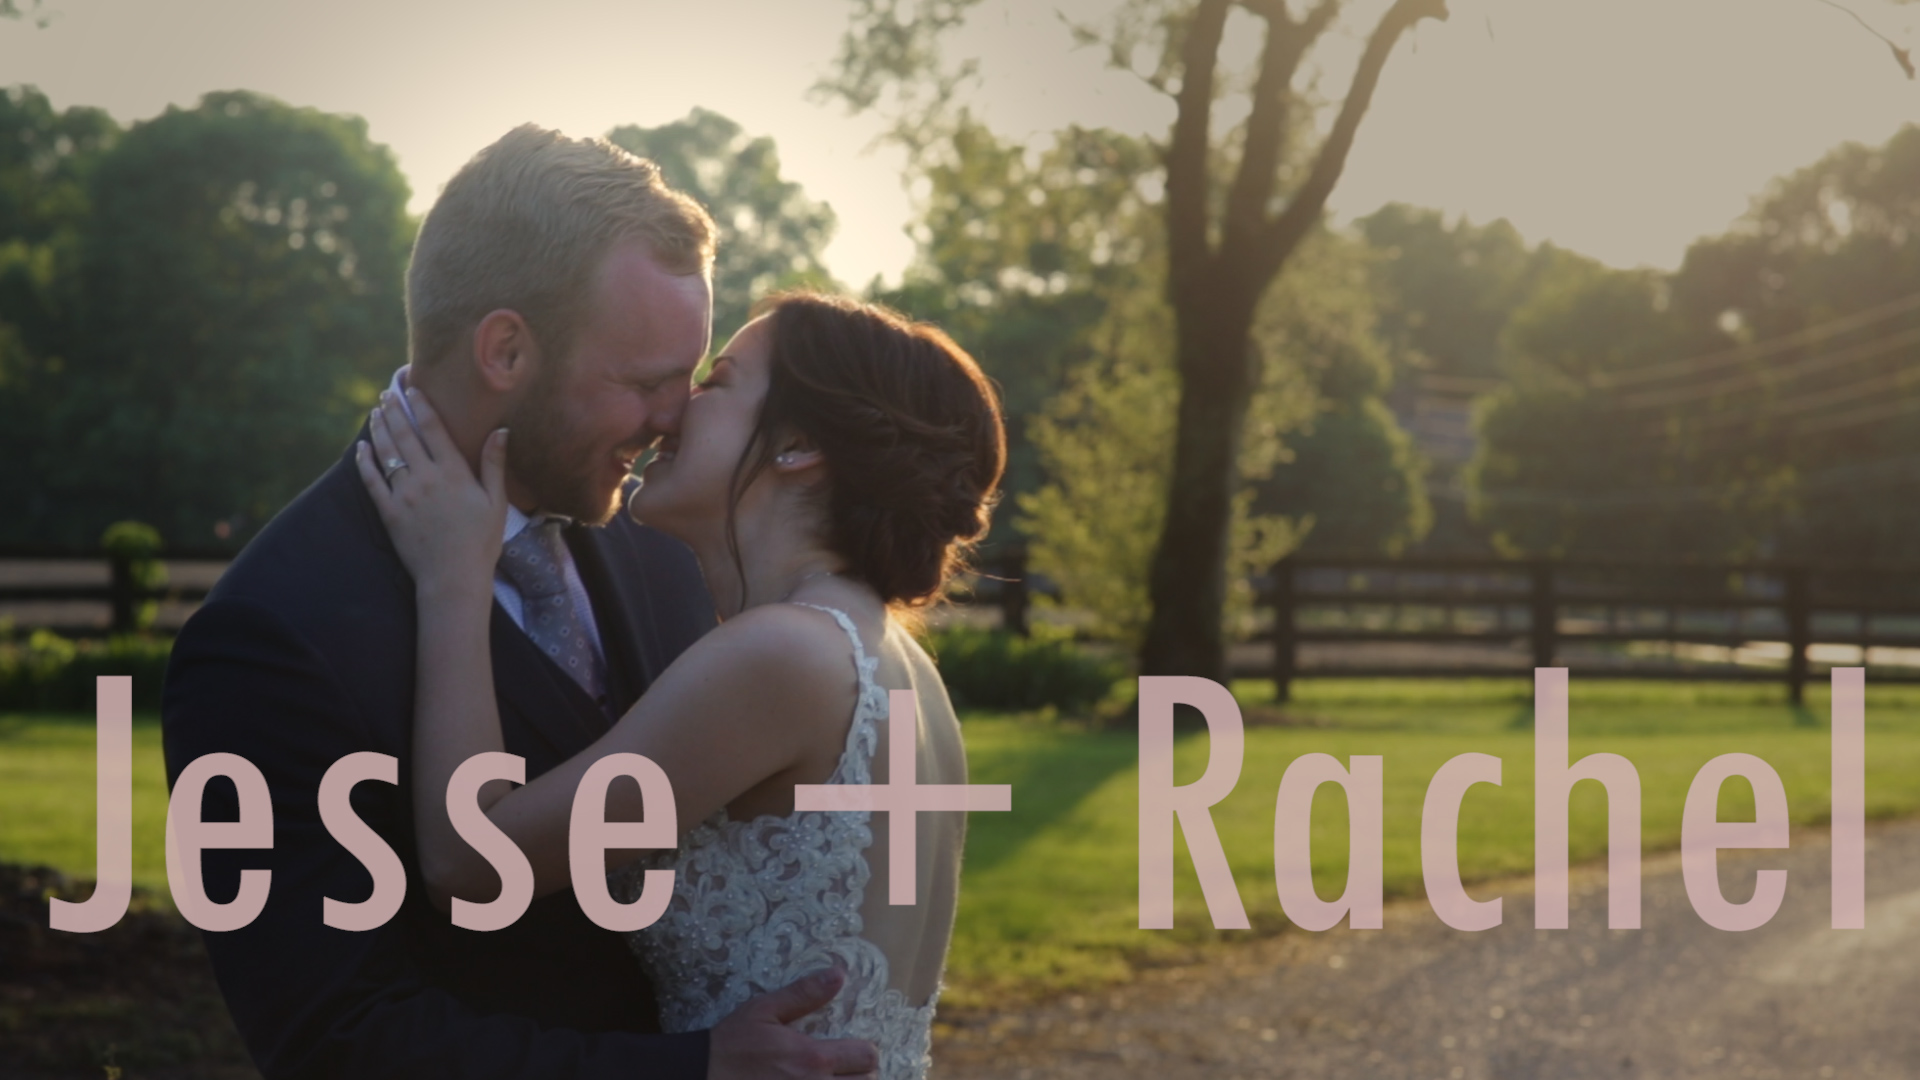 Jesse + Rachel | Milton, Kentucky | Richwood on the River